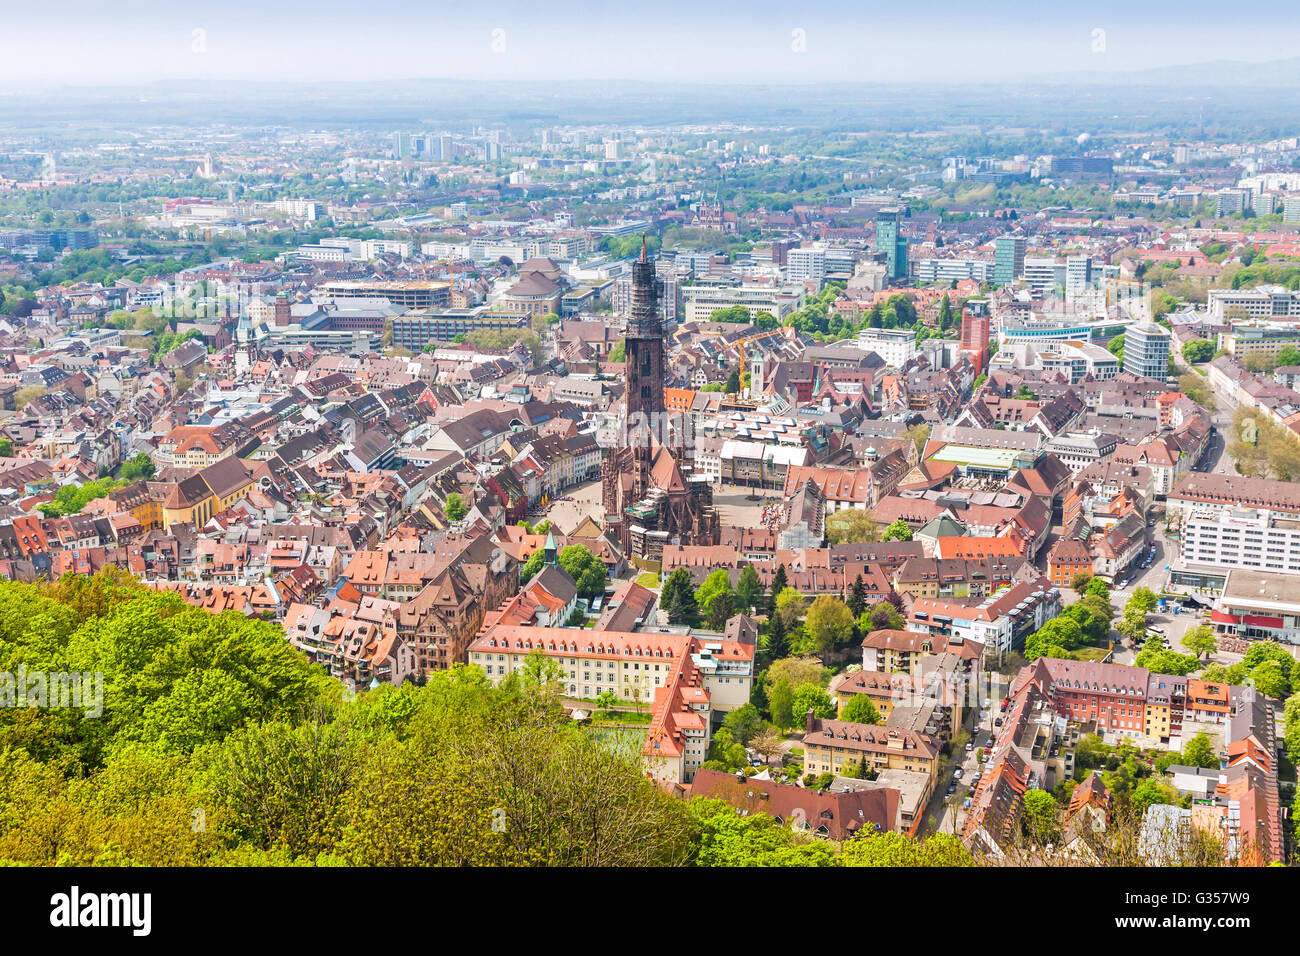 aerial view of freiburg im breisgau city germany freiburg munster stock photo royalty free. Black Bedroom Furniture Sets. Home Design Ideas